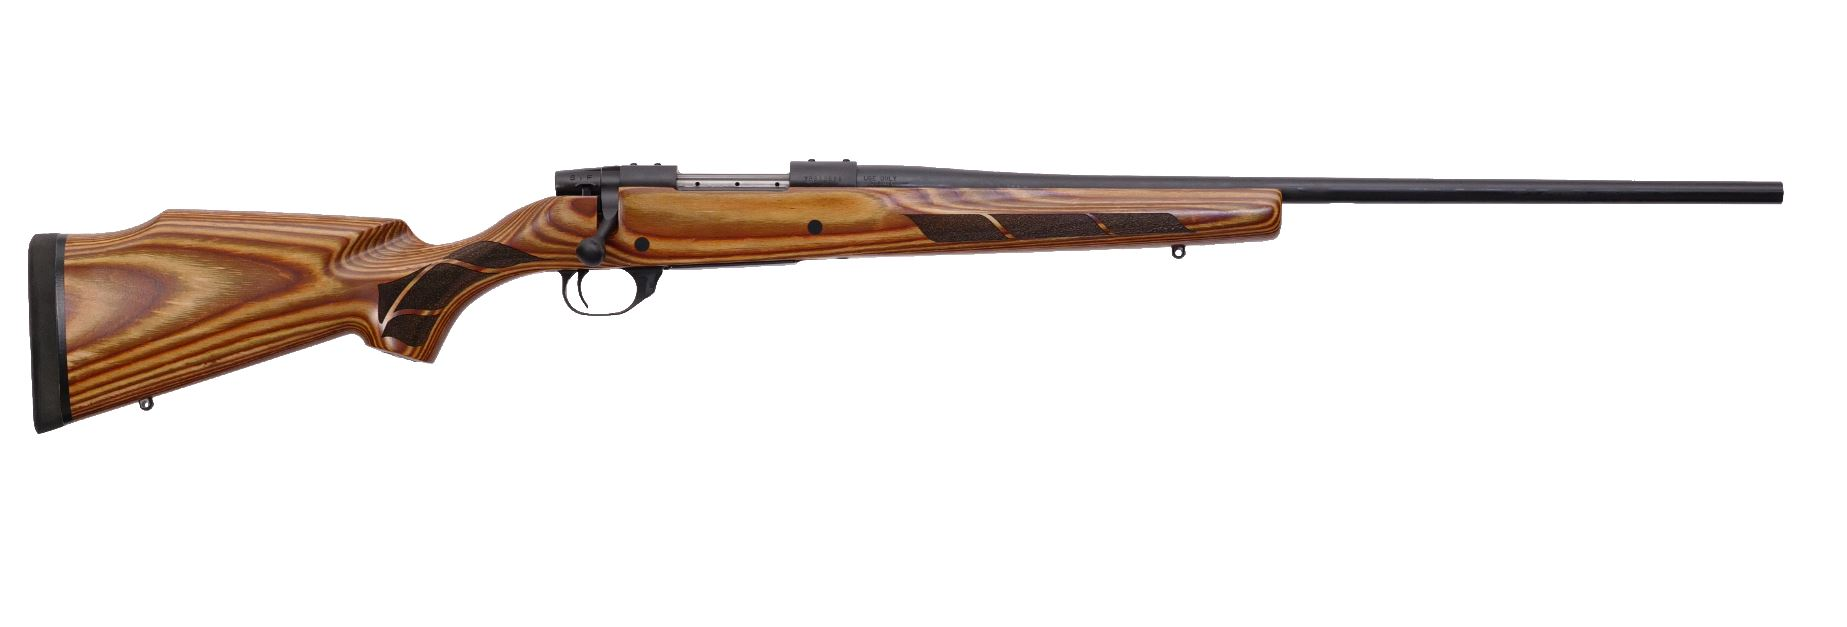 Weatherby VANGUARD SPORTER LAMINATE 300 WBY MAG